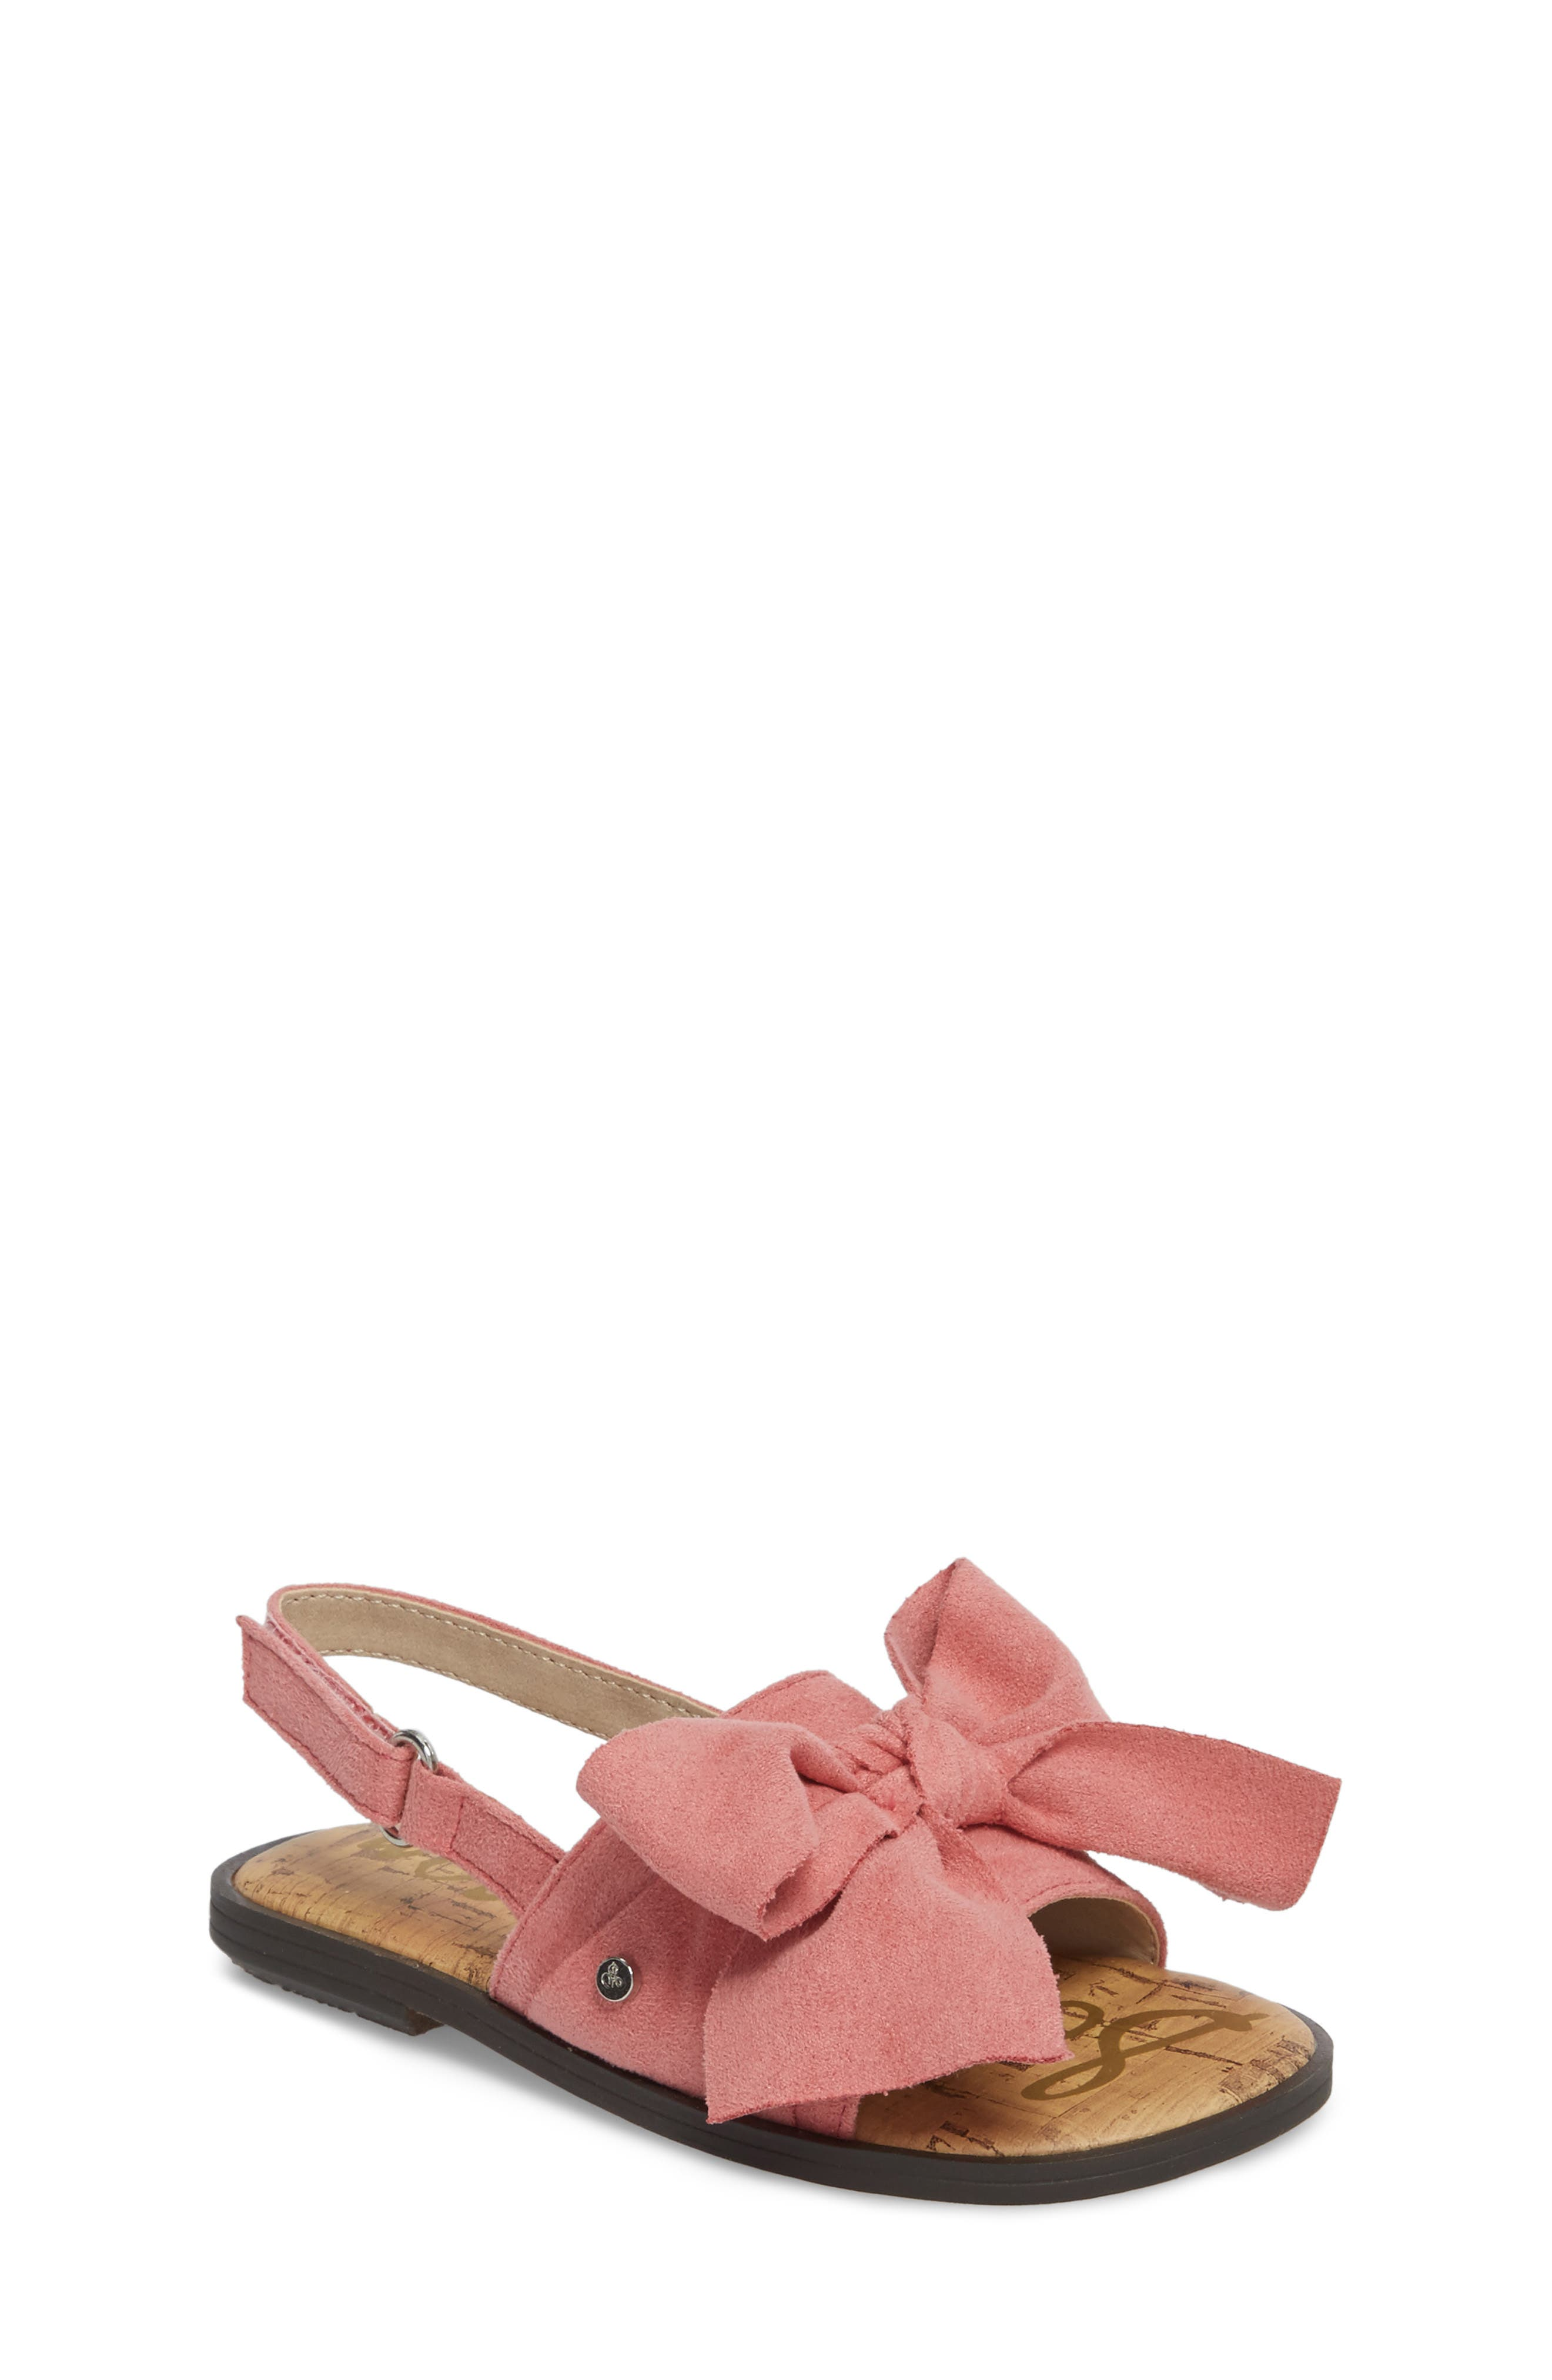 Gigi Bow Sandal,                             Main thumbnail 1, color,                             Pink Faux Suede